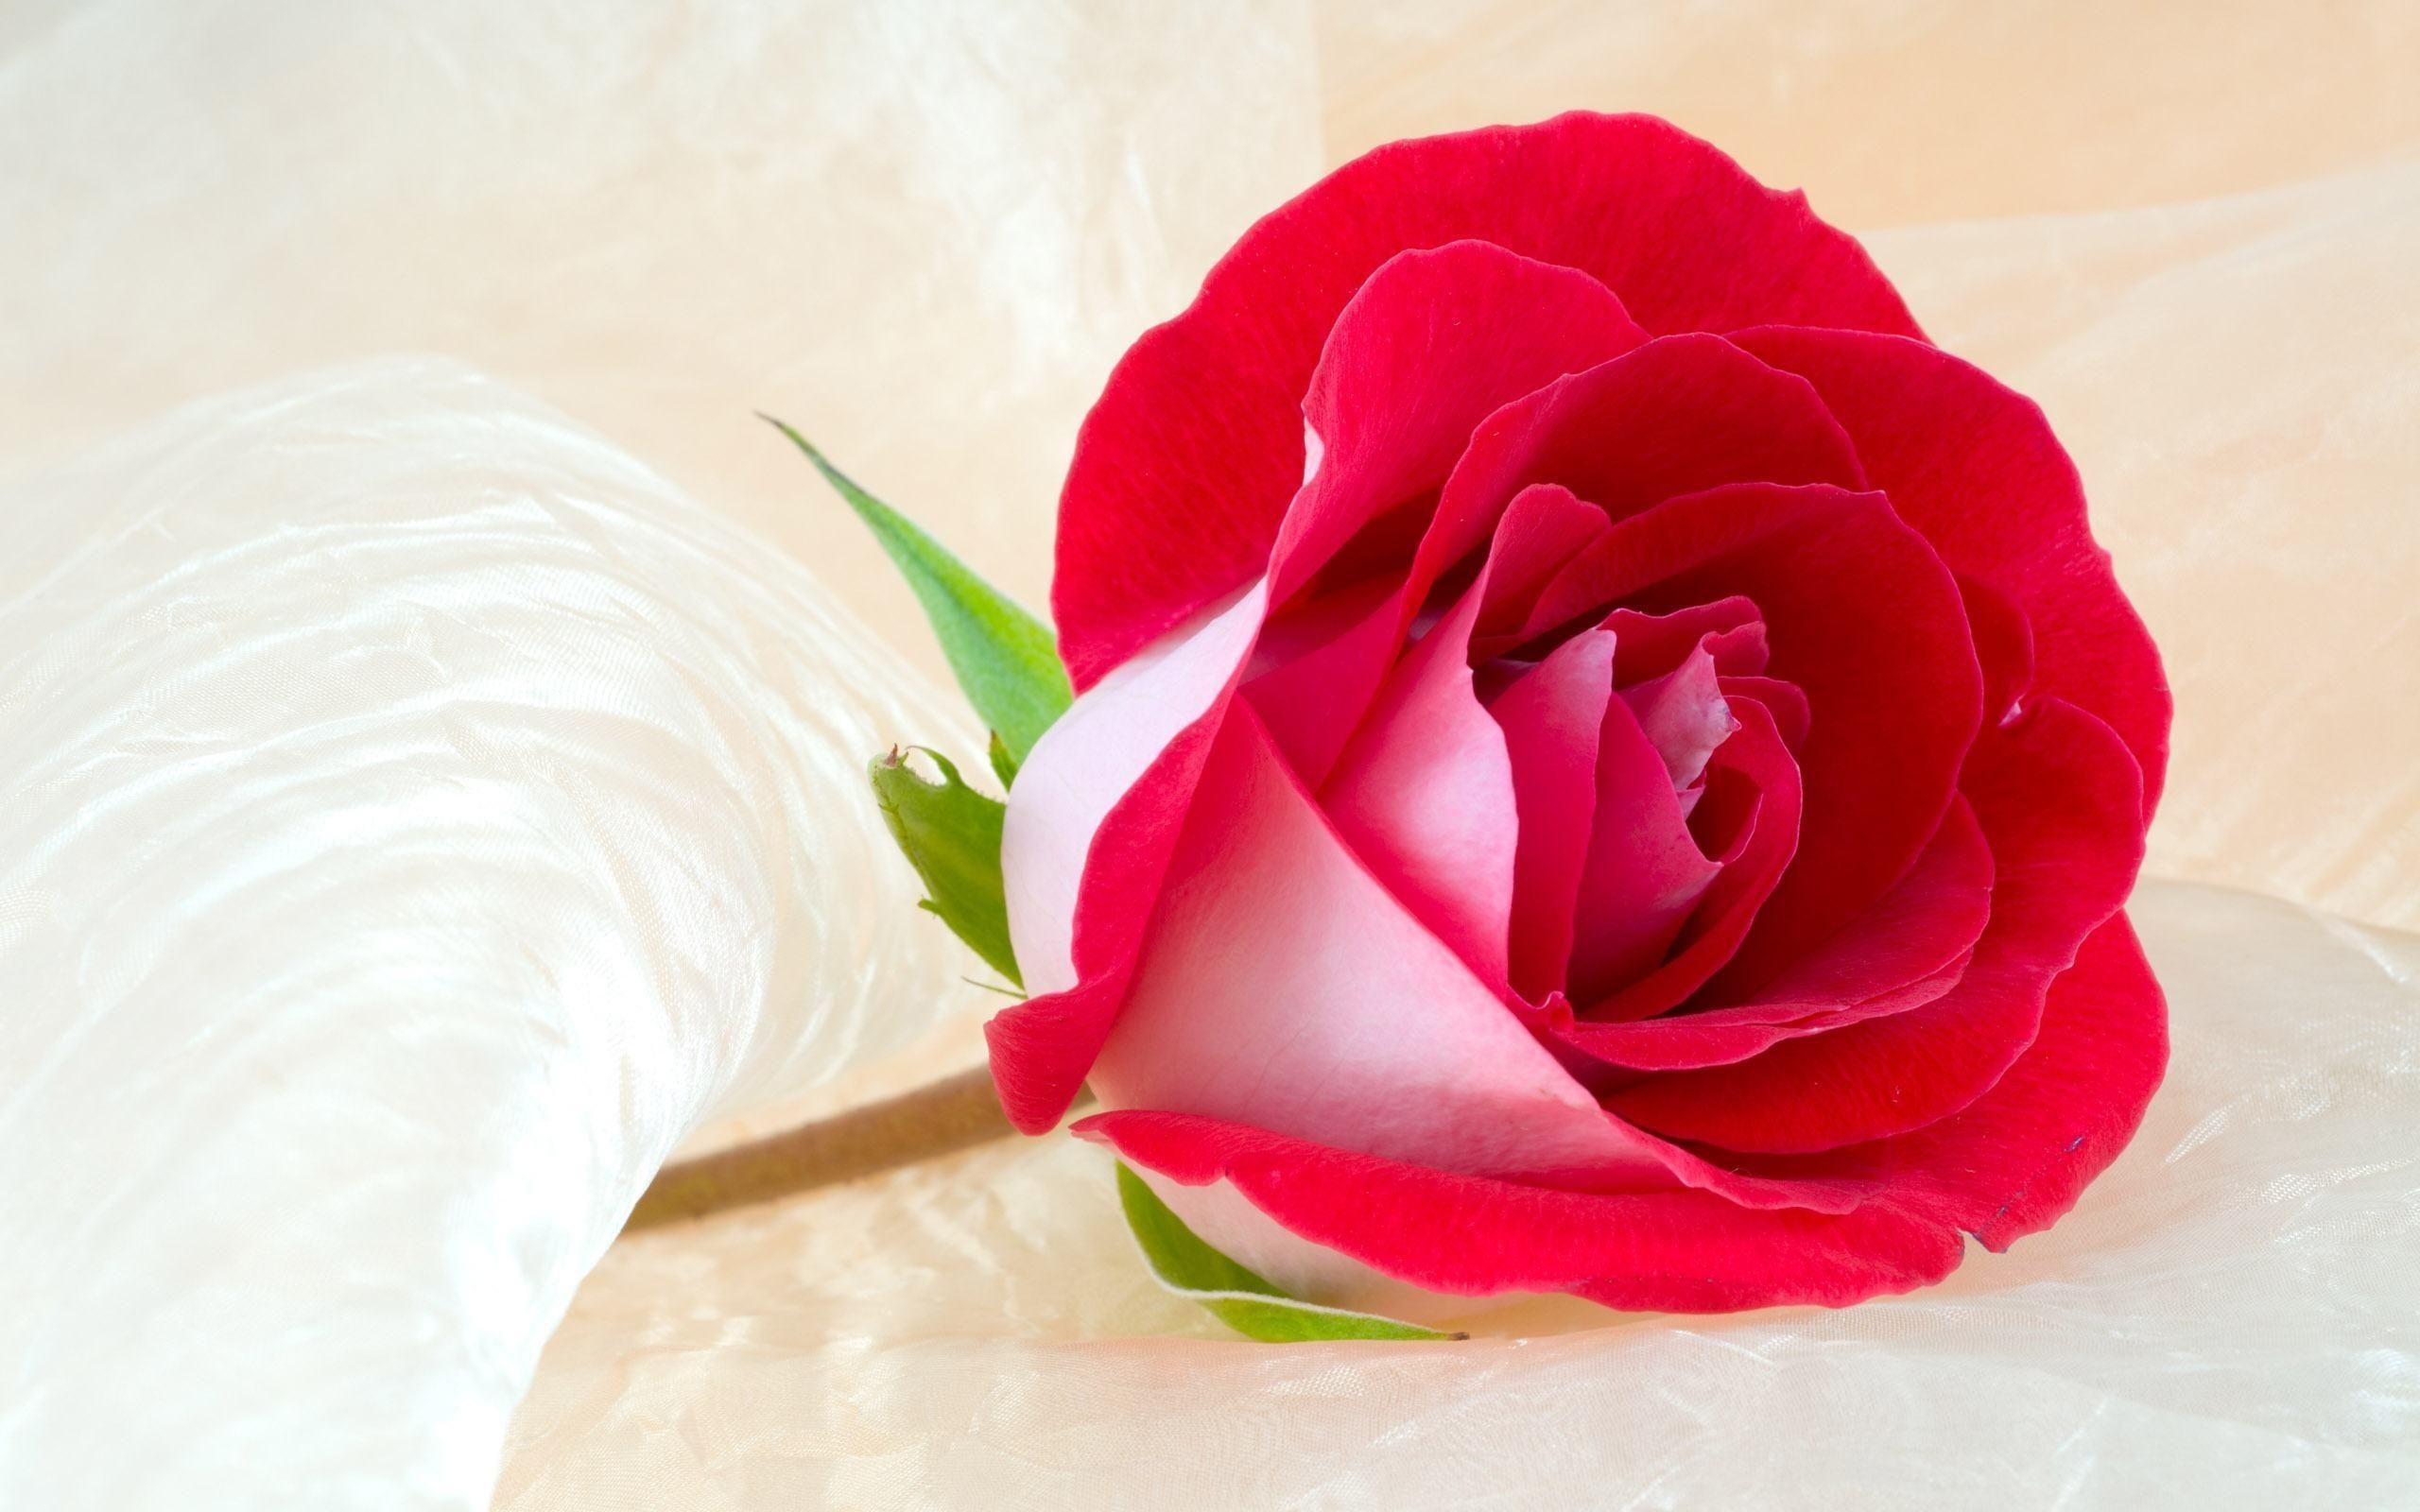 10 New Rose Wallpapers Free Download FULL HD 1920×1080 For PC Background